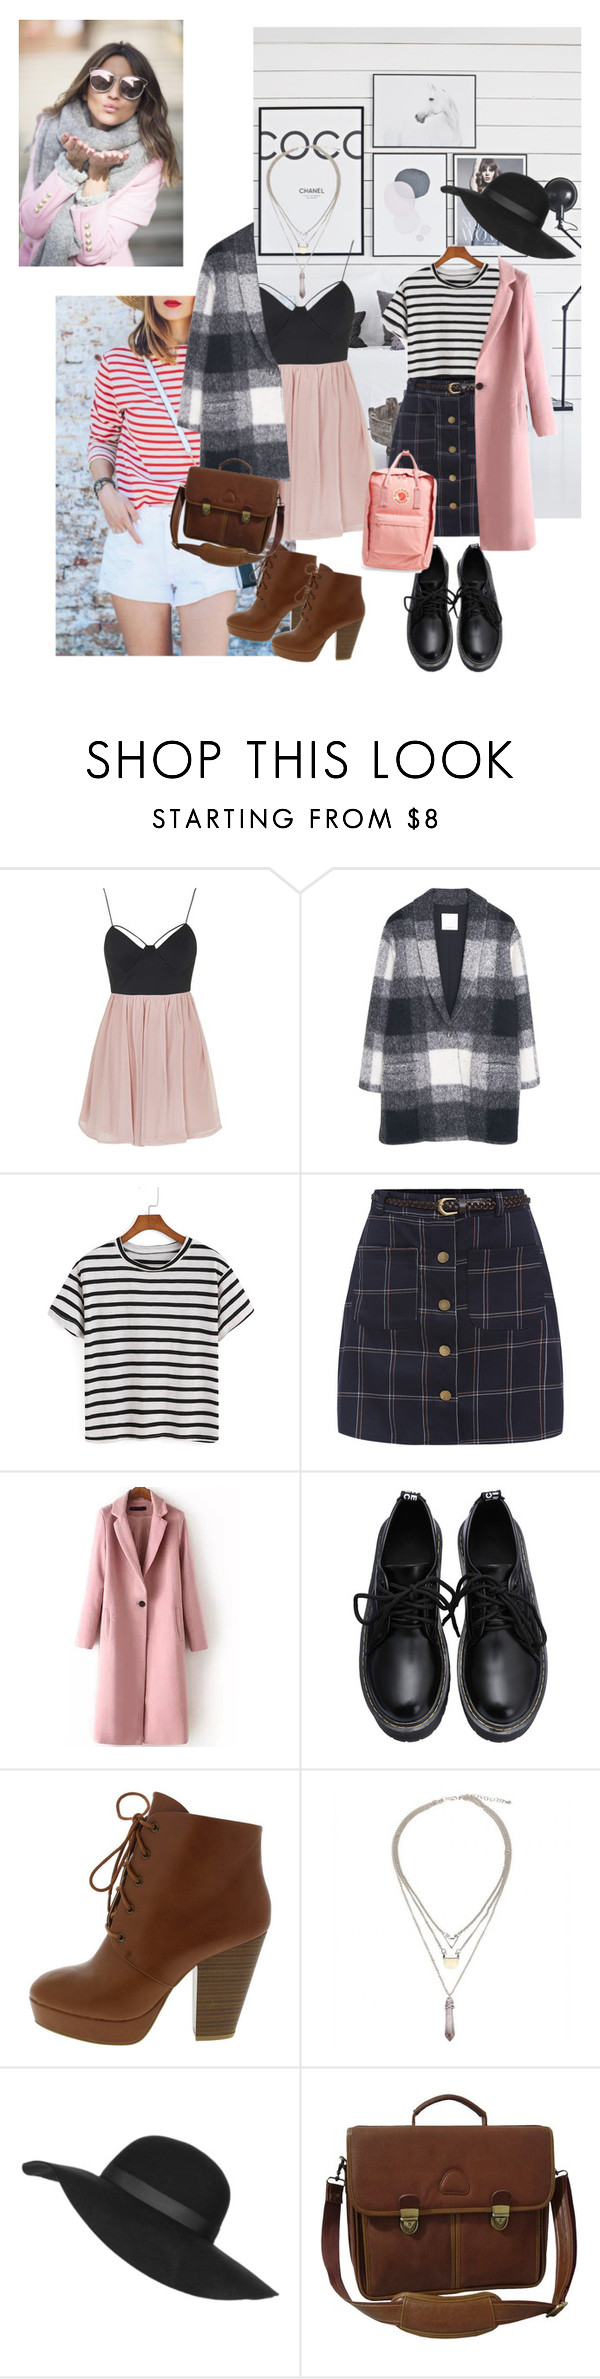 """""""Girly sandinavian pastel outfits """" by xbutterbee ❤ liked on Polyvore featuring Topshop, MANGO, AmeriLeather and Fjällräven"""